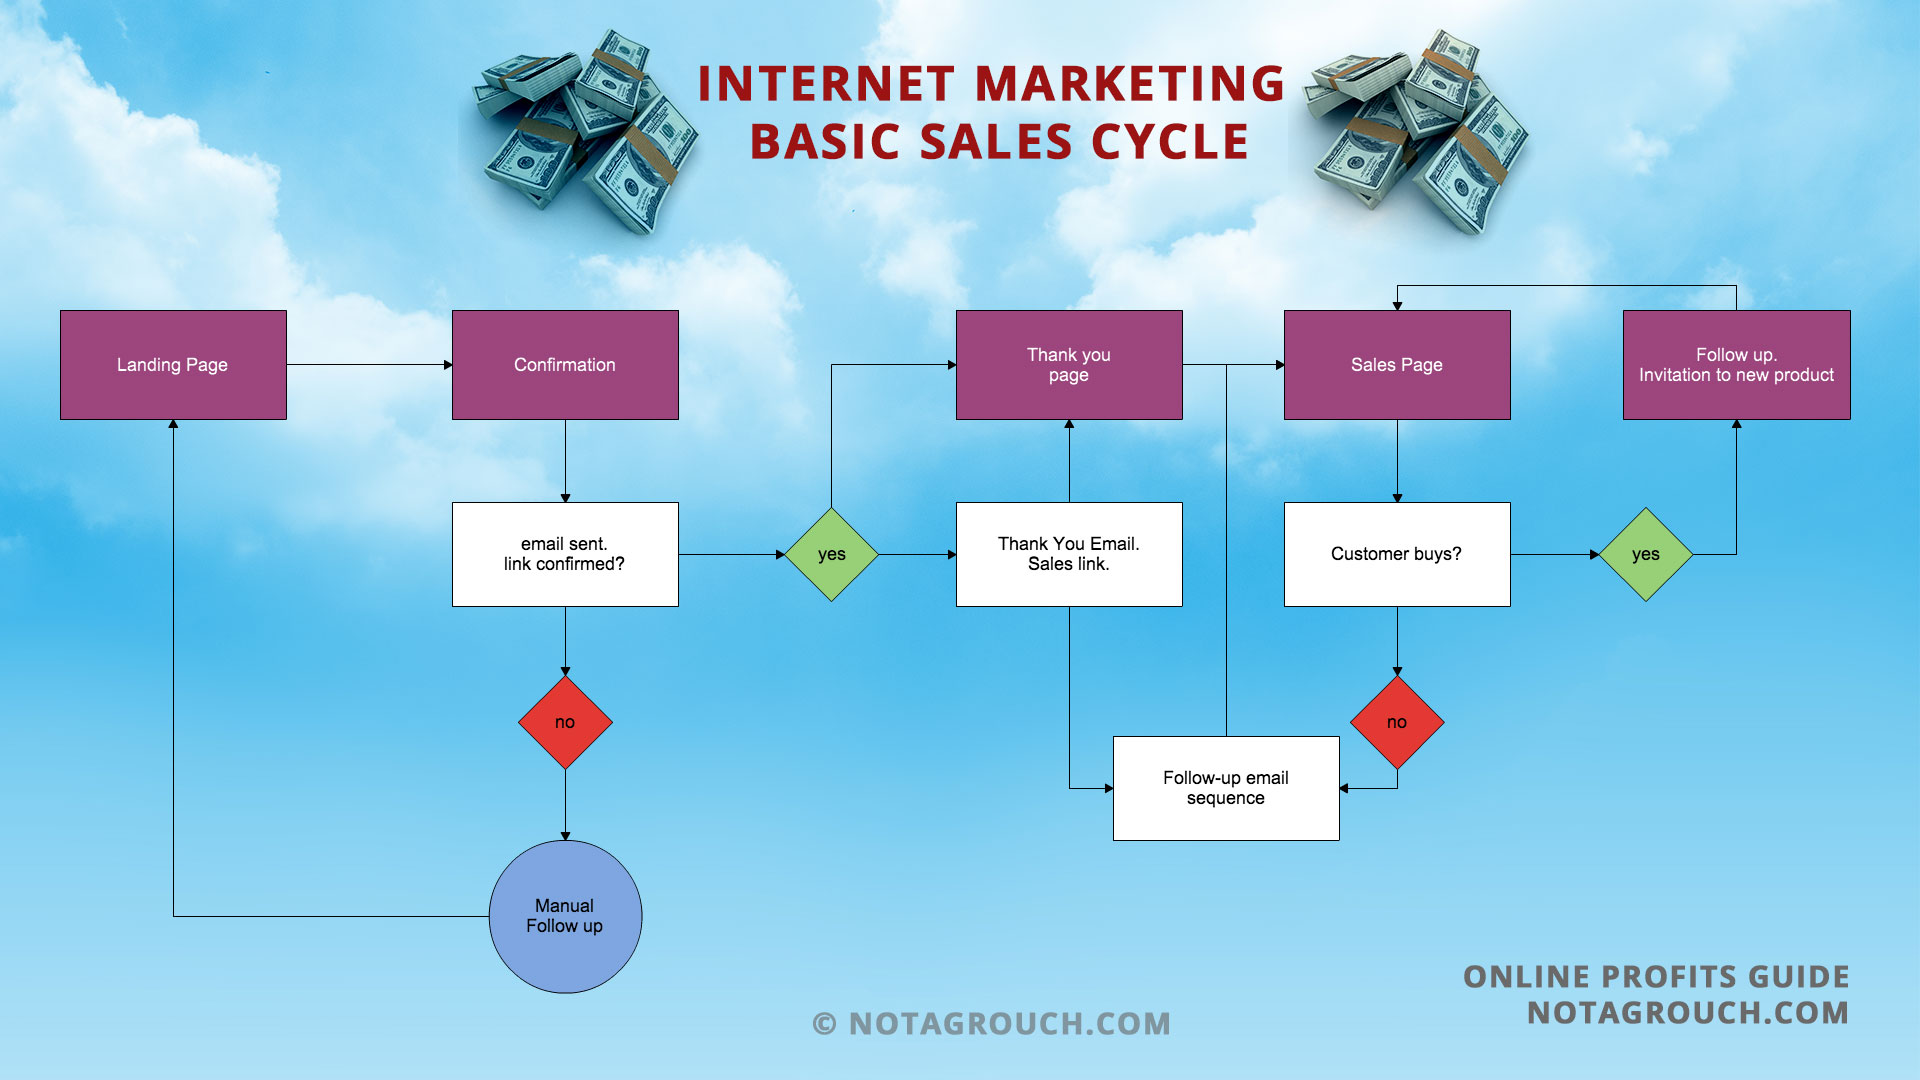 The internet marketing basic sales flowchart